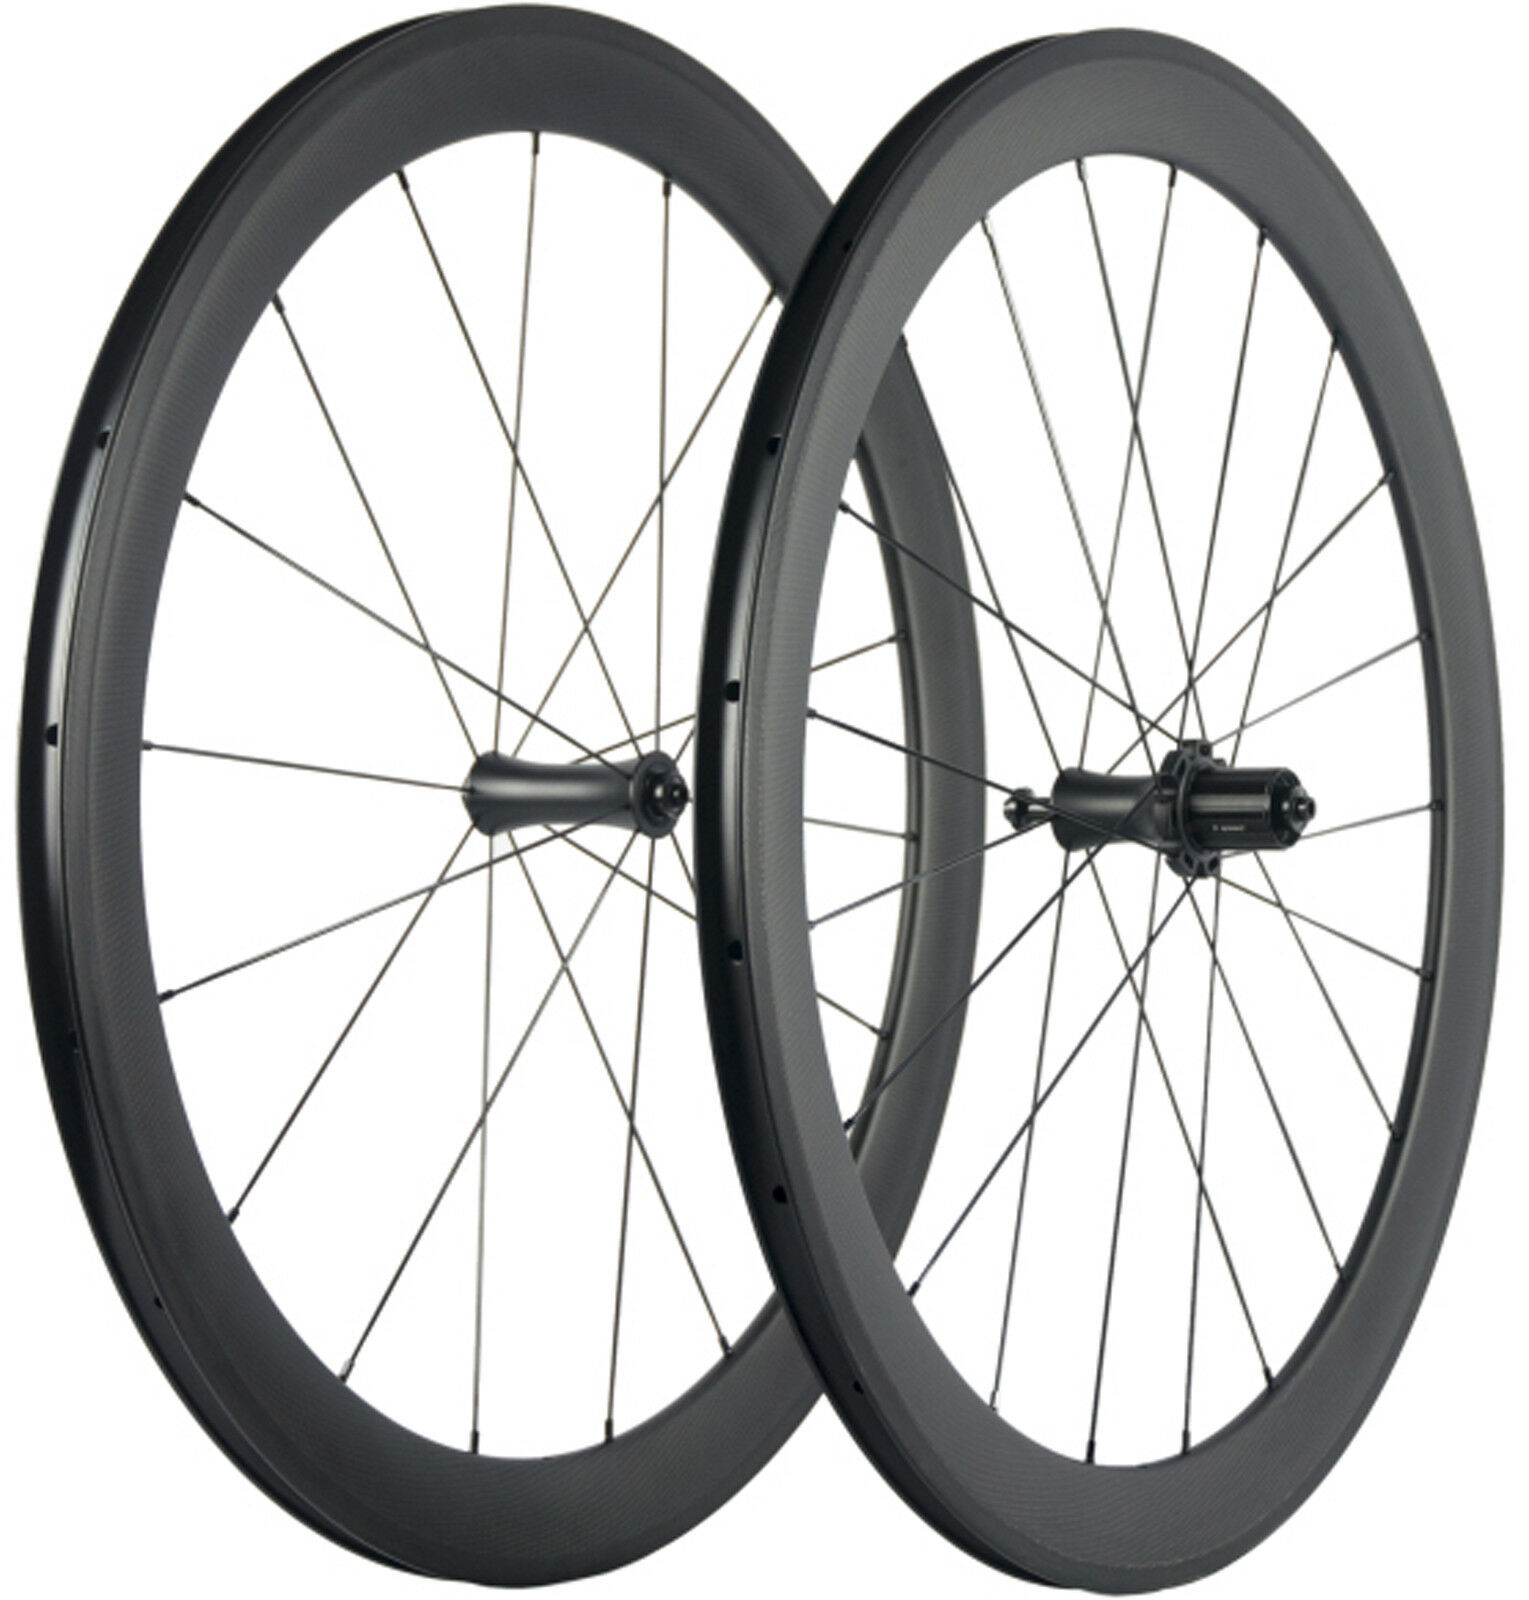 Carbon Wheelset Bicycle Utral Light Carbon Wheels 50mm Road Bike 700C Race Wheel